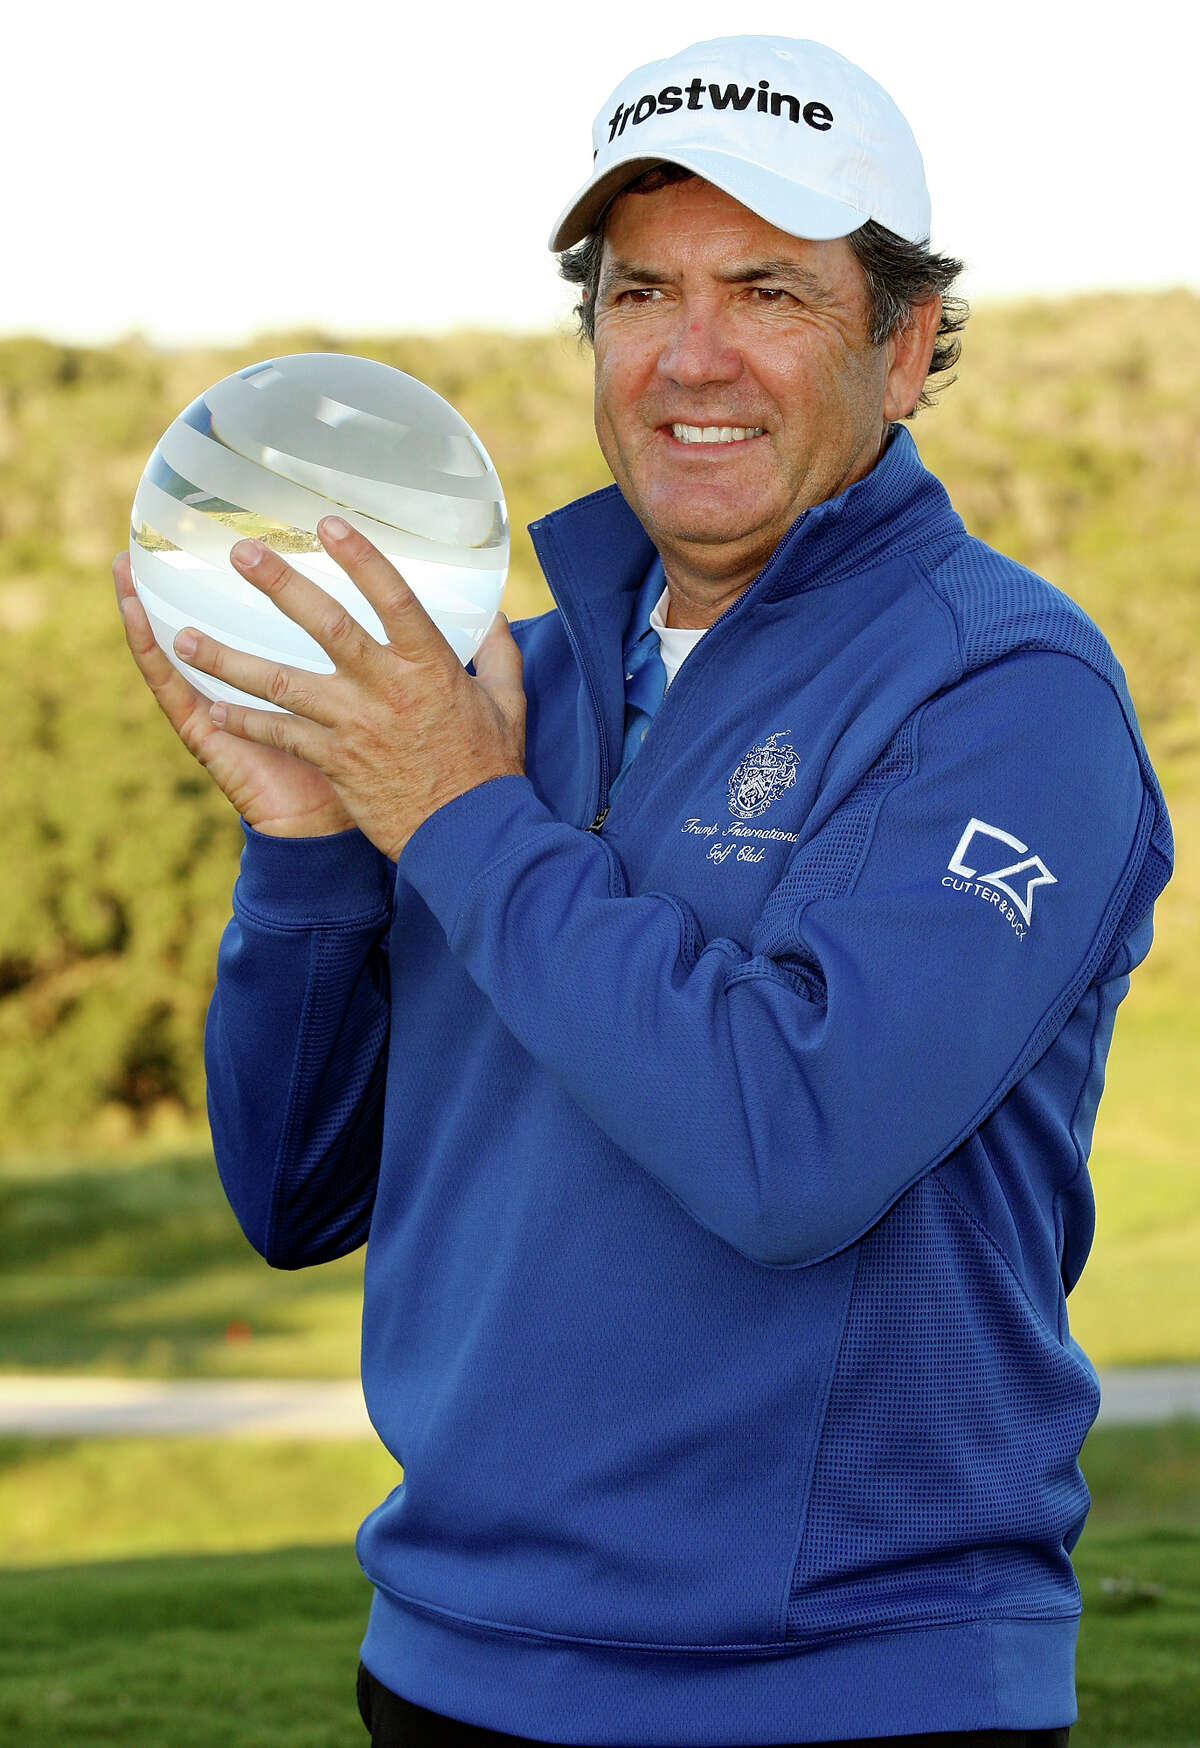 David Frost poses with the trophy after defeating Bernhard Langer on the second playoff hole during the final round of the 2012 AT&T Championship on Sunday Oct. 28, 2012 at the AT&T Canyons Course at TPC San Antonio.